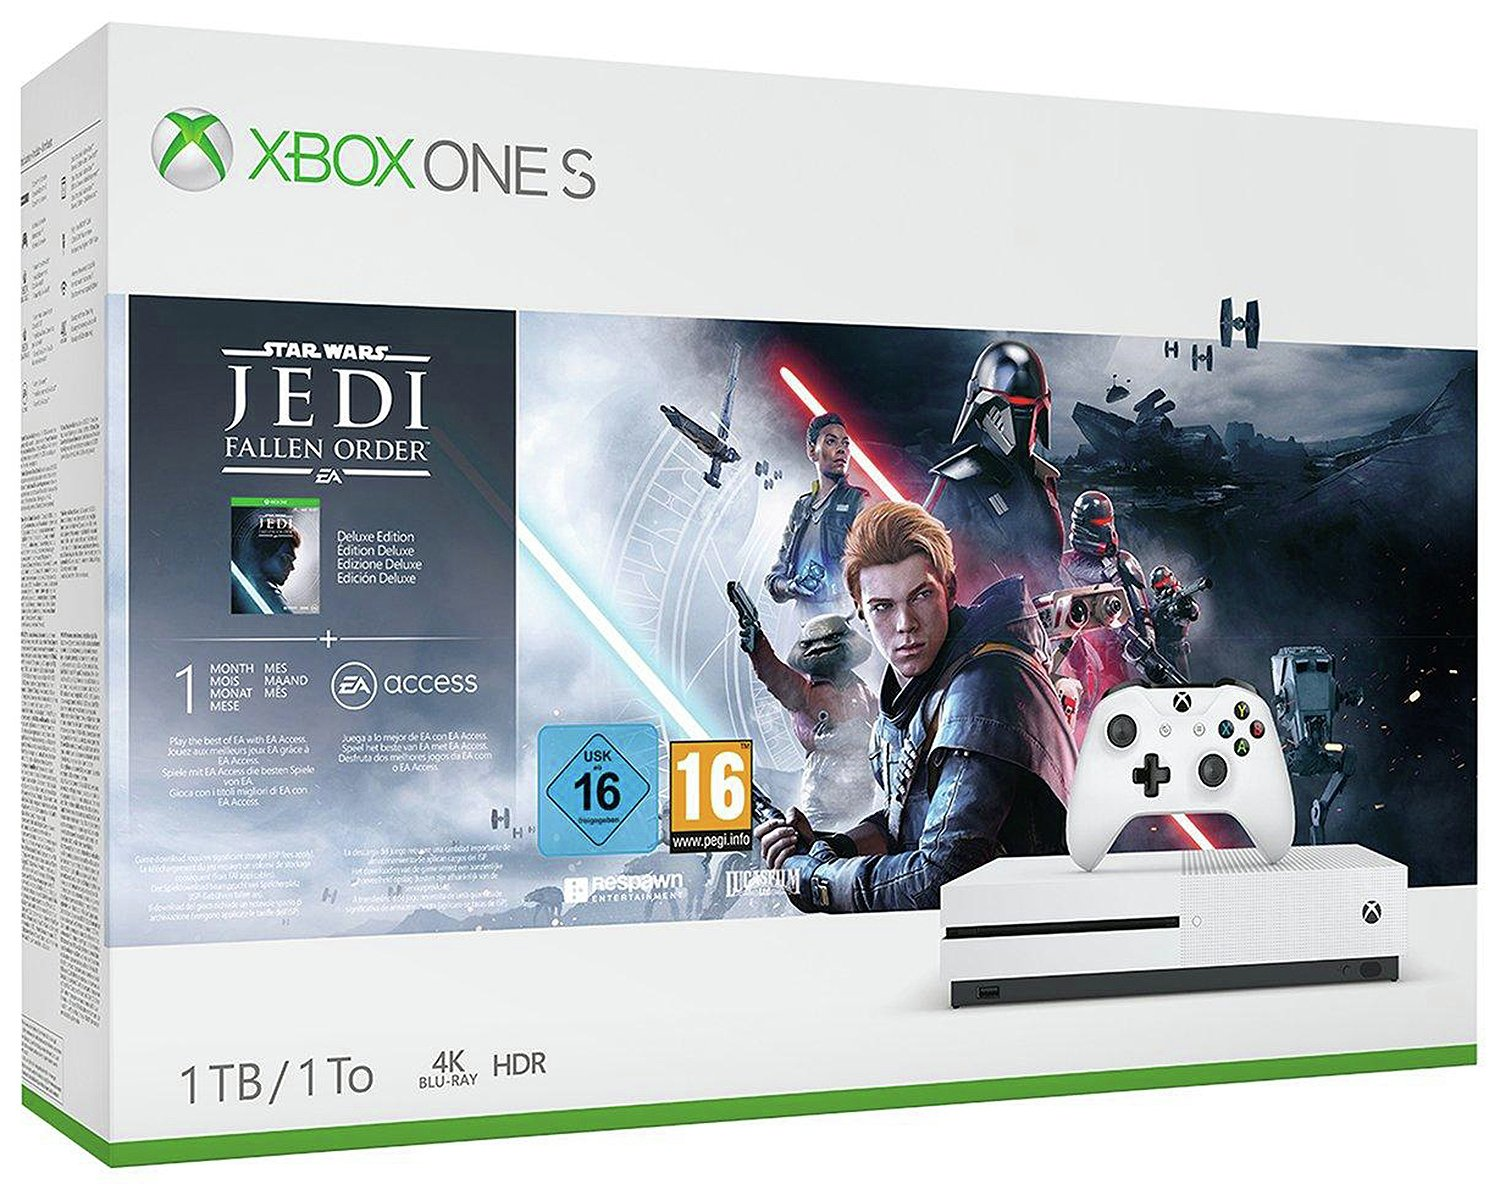 Xbox One S 1TB Console & Star Wars Jedi: Fallen Order Bundle